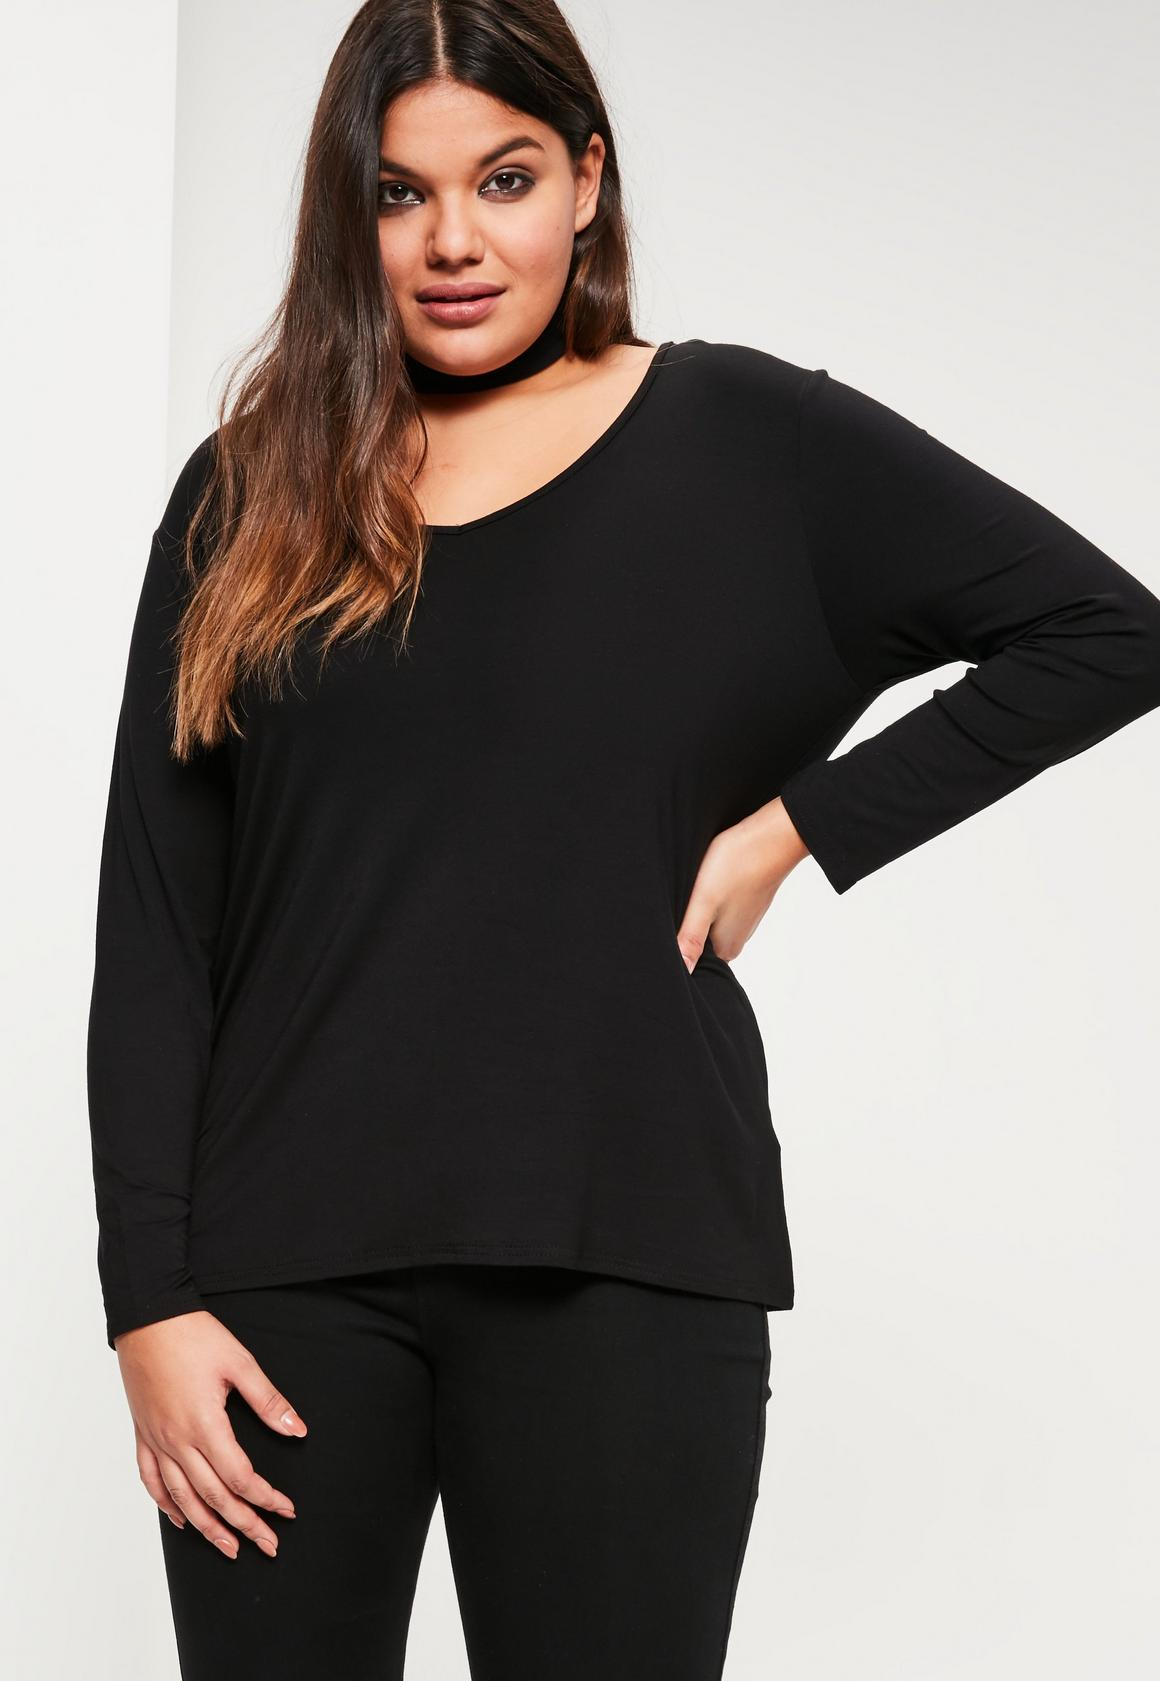 Plus Size Black Long Sleeve Boyfriend T-shirt | Missguided